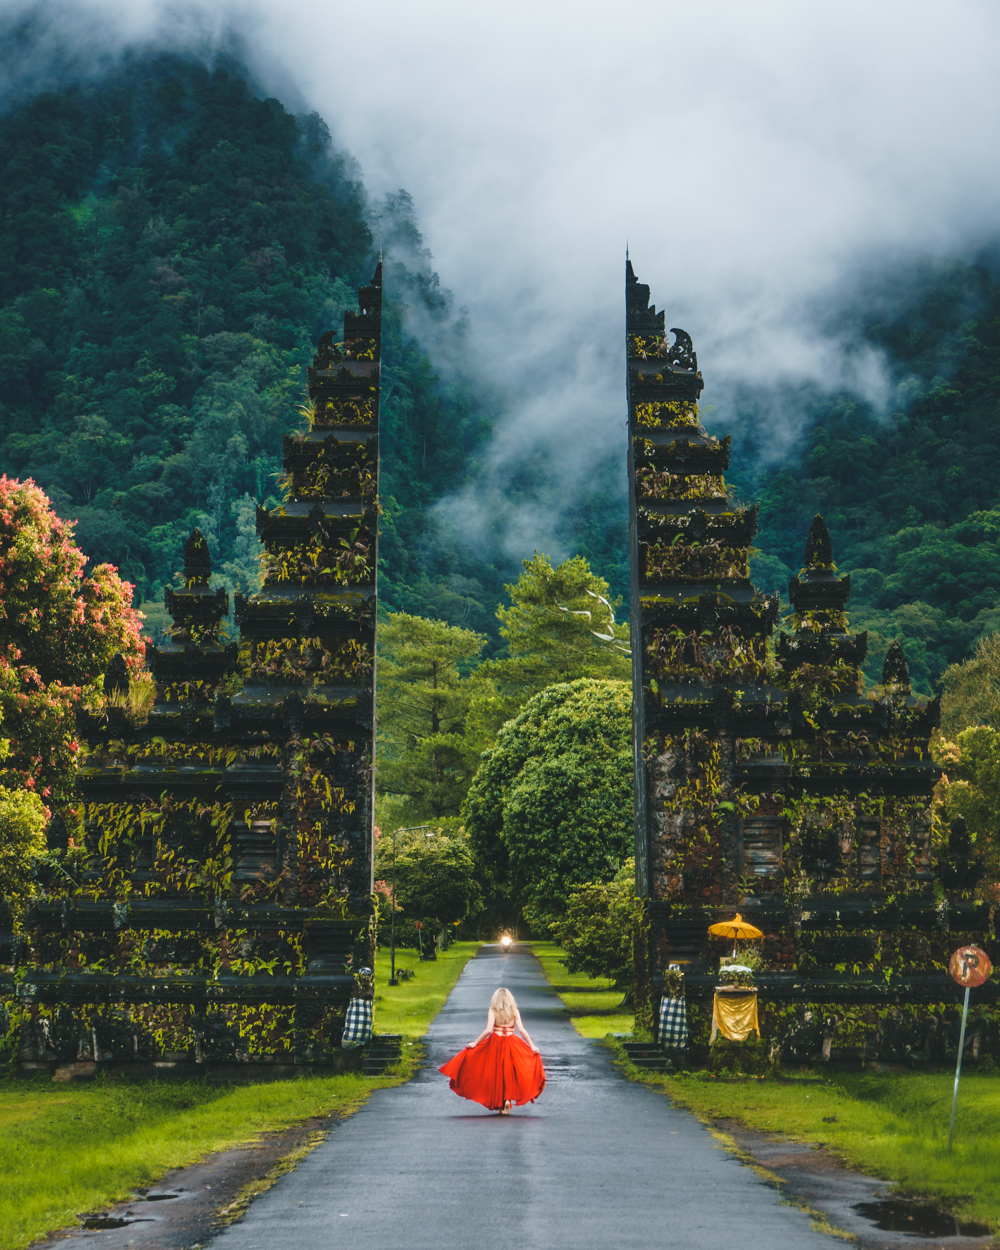 Photograph of a girl in a red dress running through what looks like a gate, formed by two pillars with a buddhist artistic style to them. Alongside the road she is running on, in the end of is a light formed by what looks like a motorbike. The surrounding is all green tropical forest and the vegetation has grown on tho the pillars making the red dress and the girl really stand out in the center of the frame. The photo is taken in portrait mode to get the full height of the pillars and incorporate the clouds that lay on top of the mountain in the background. The photograph is taken in Bali, Indonesia, 2018 by Oliver Sjöström.